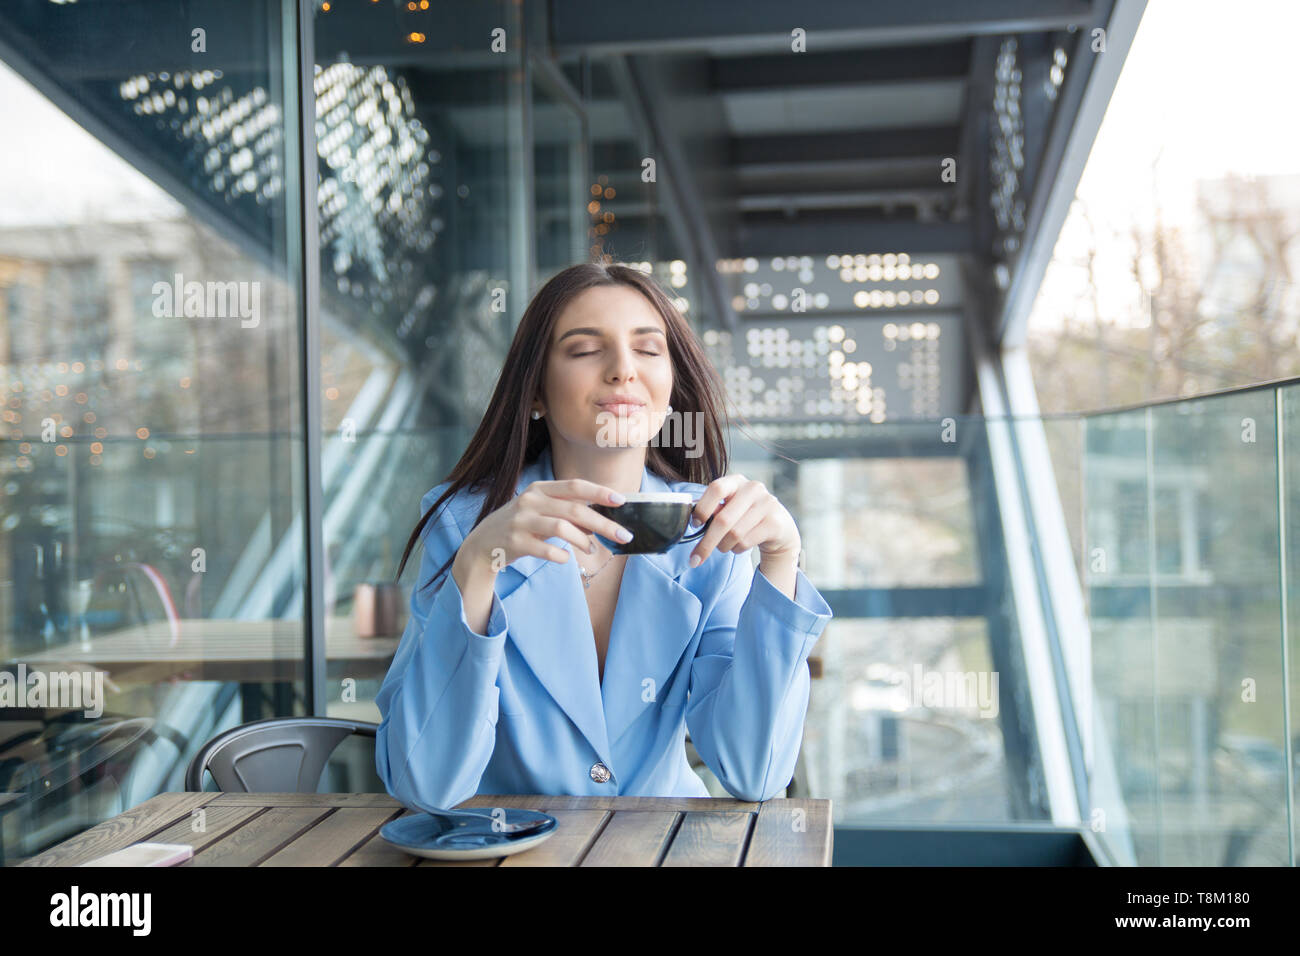 Love for coffee. Portrait of cute girl drinking enjoying her tea on the balcony over outside terrace with green bush background, wearing blue suit, wh - Stock Image